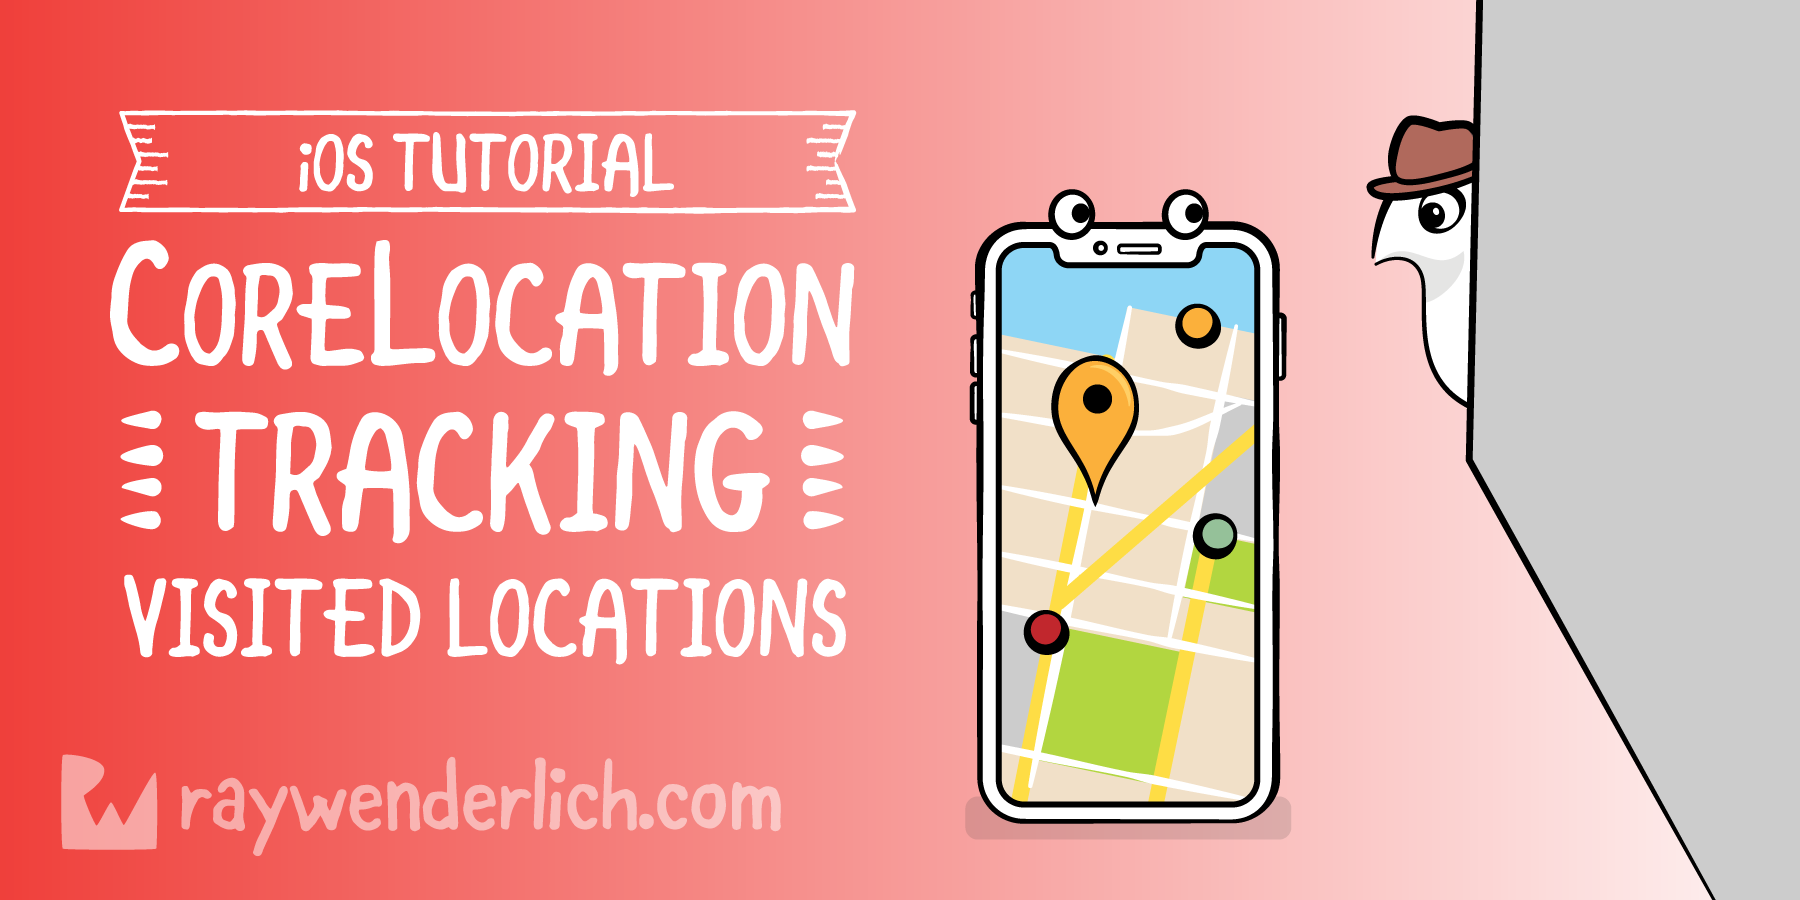 Core Location Tutorial for iOS: Tracking Visited Locations